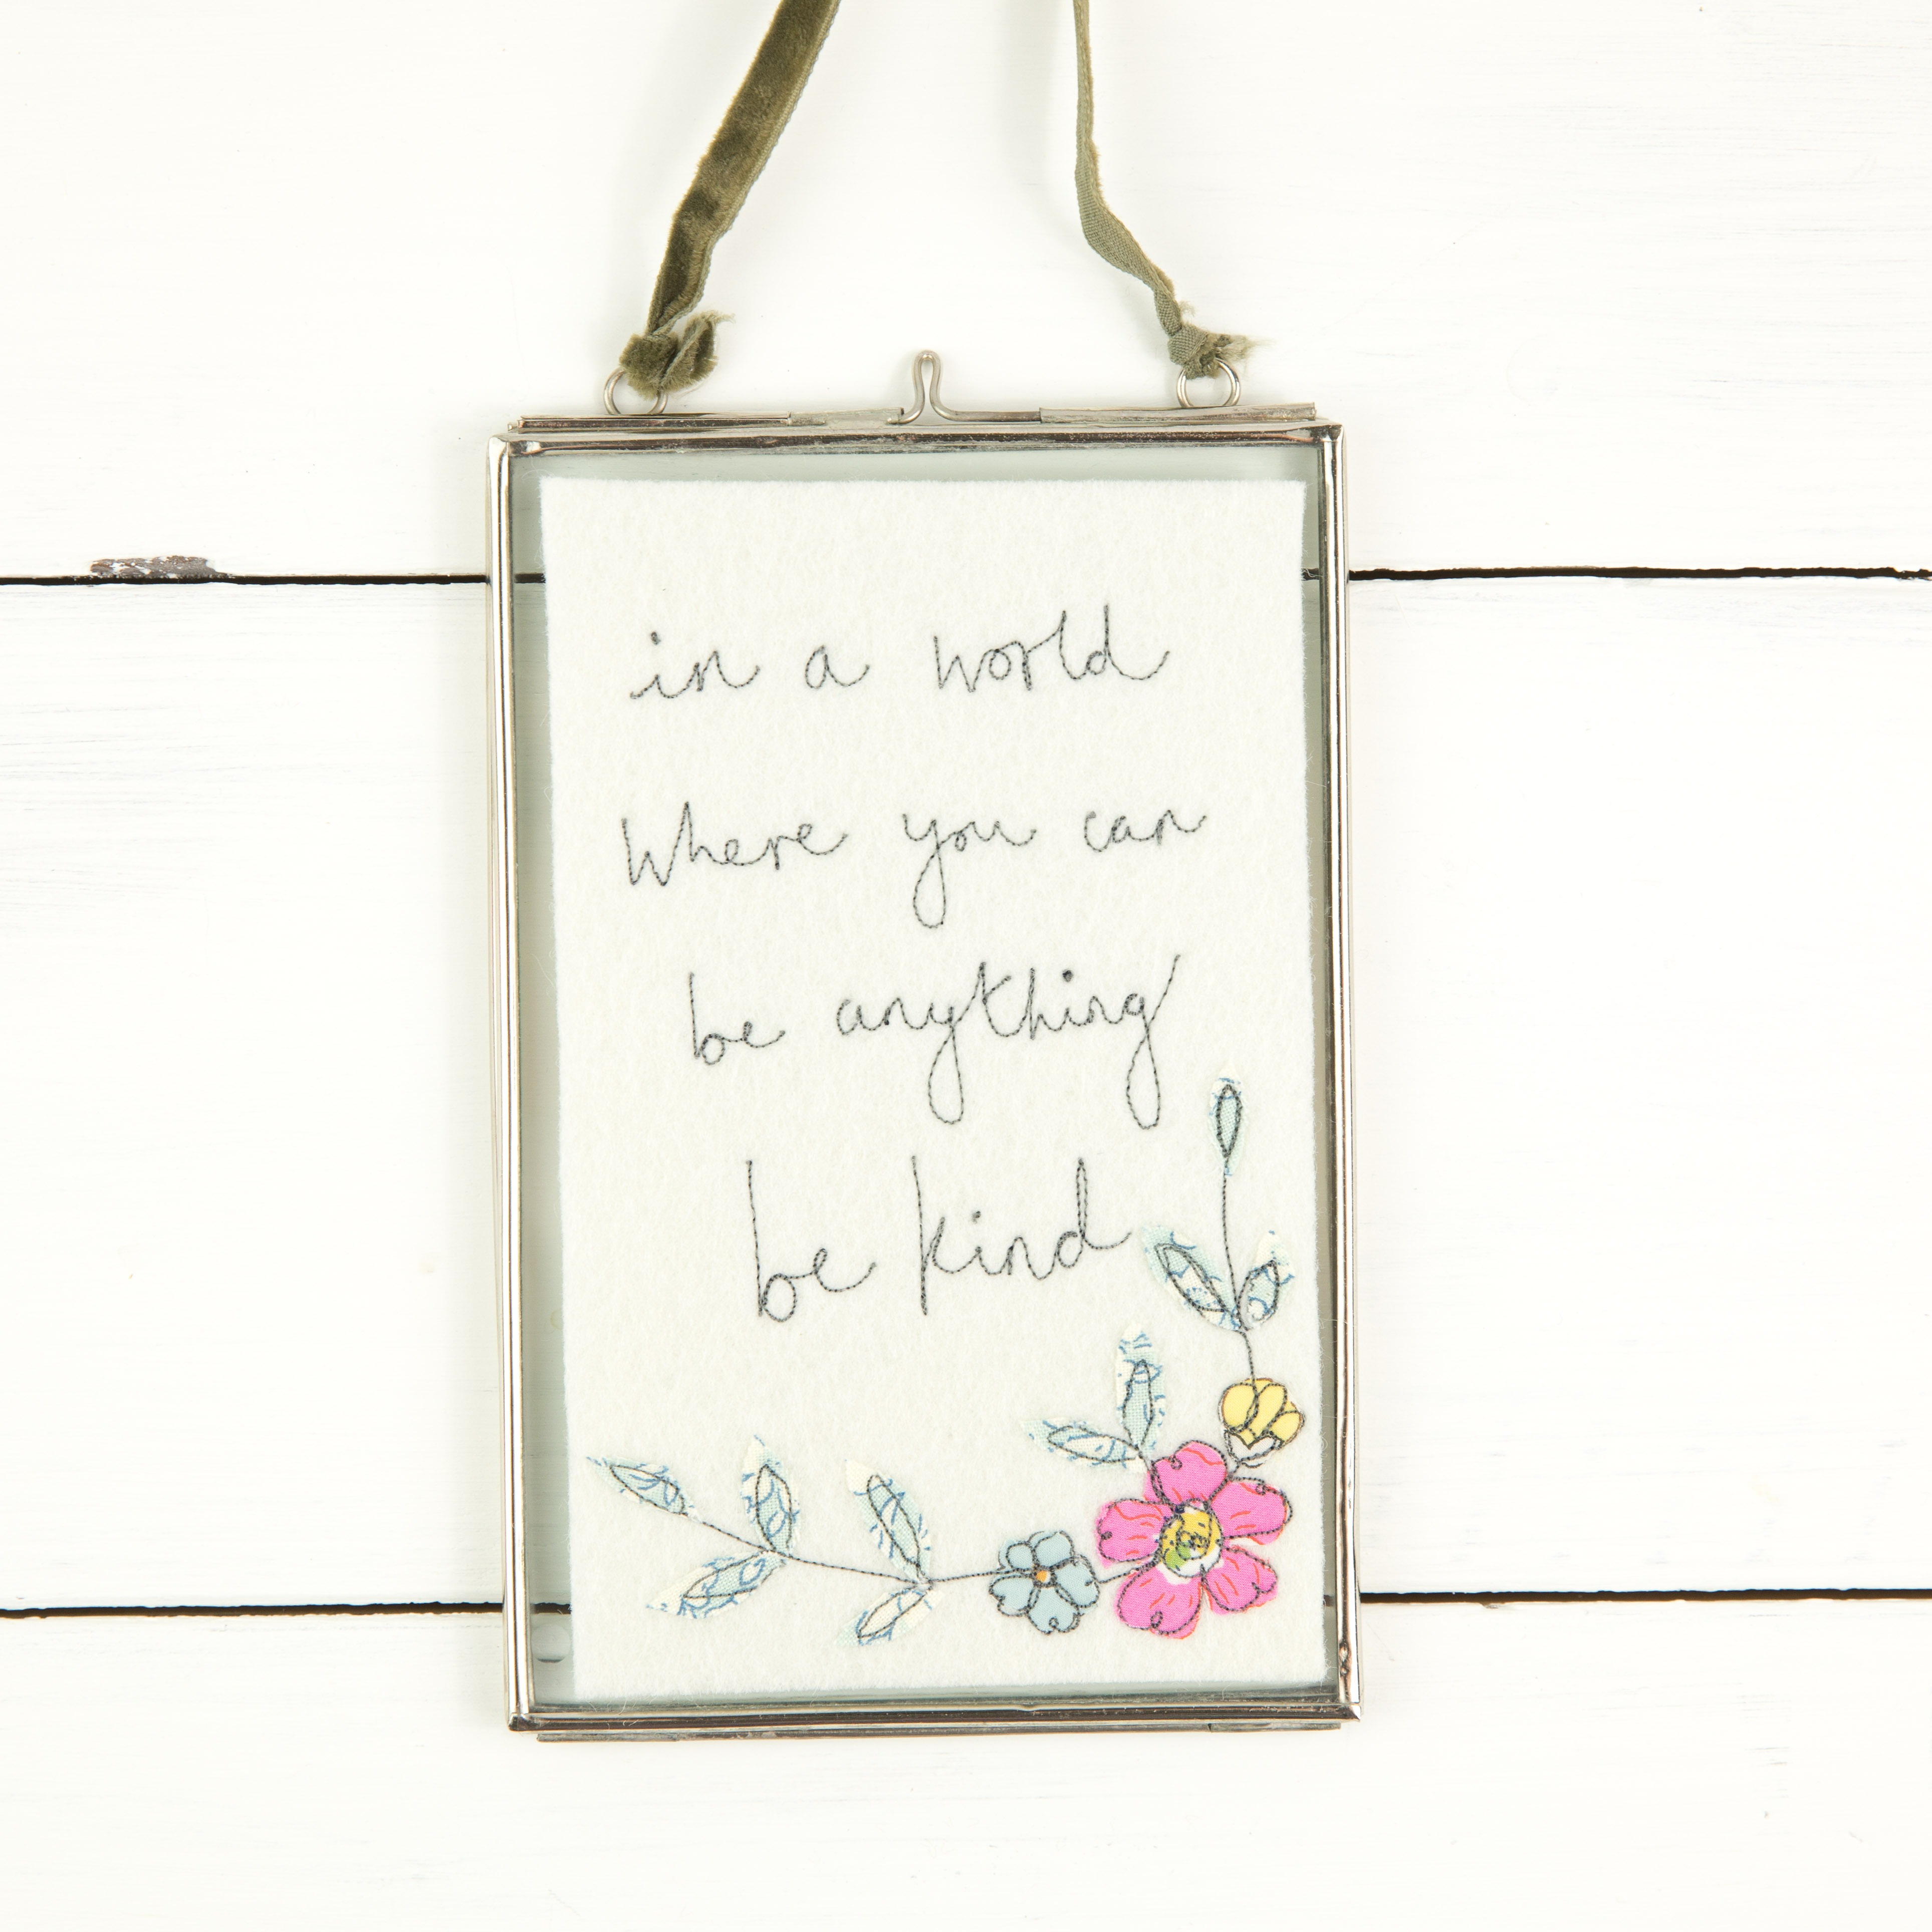 Small be kind floral framed embroidery